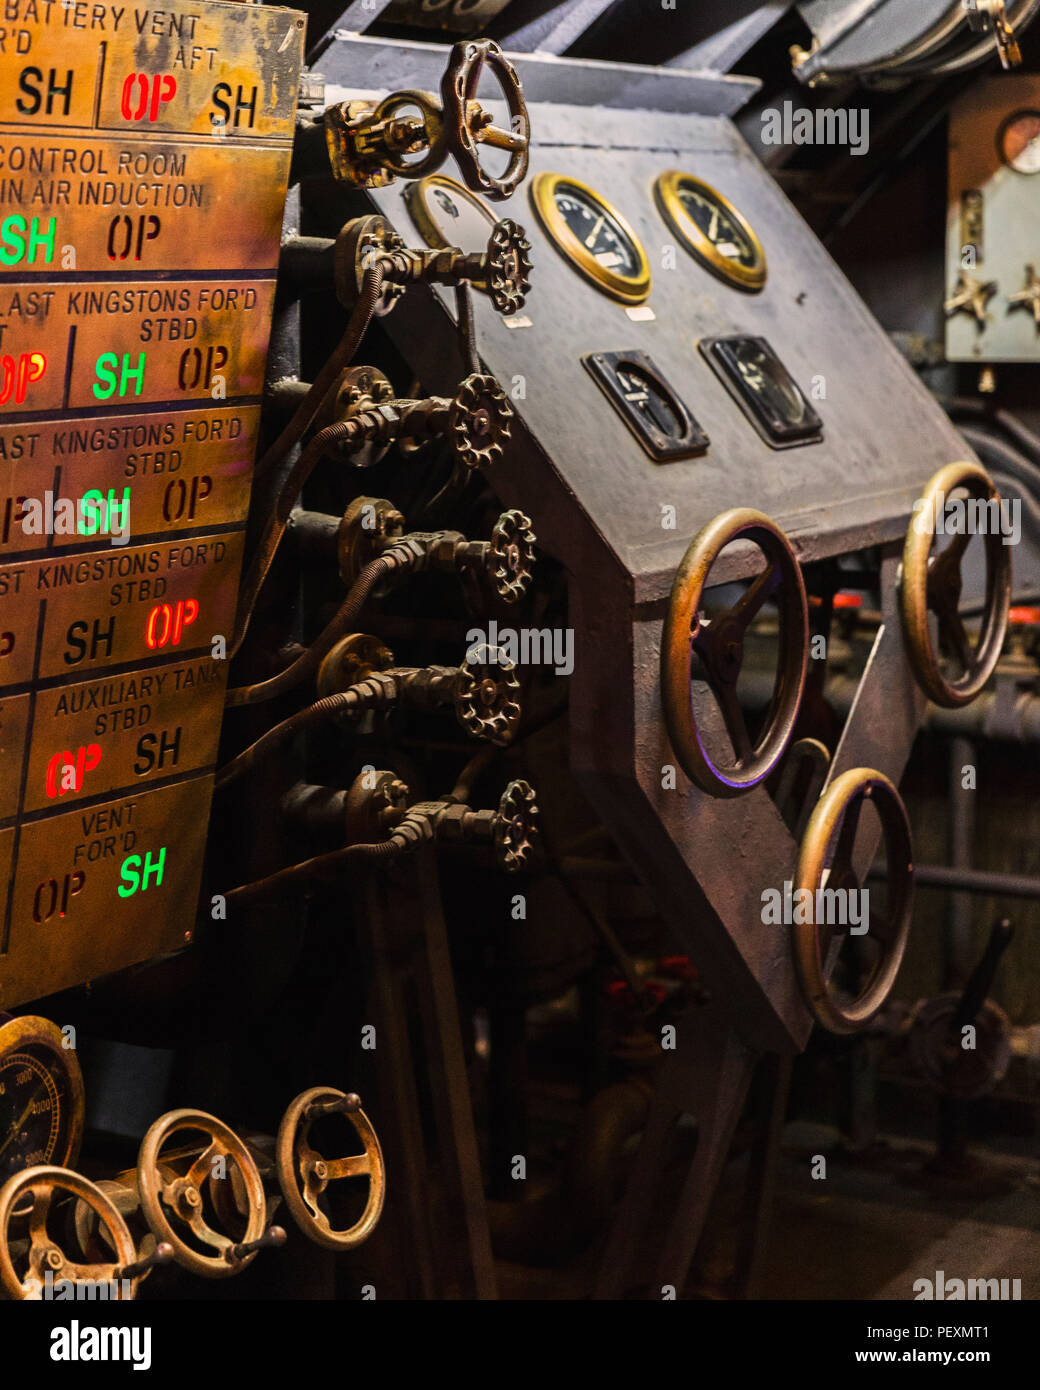 Film prop, machinery with knobs and valves, Cinecitta Museum in Rome, Italy - Stock Image